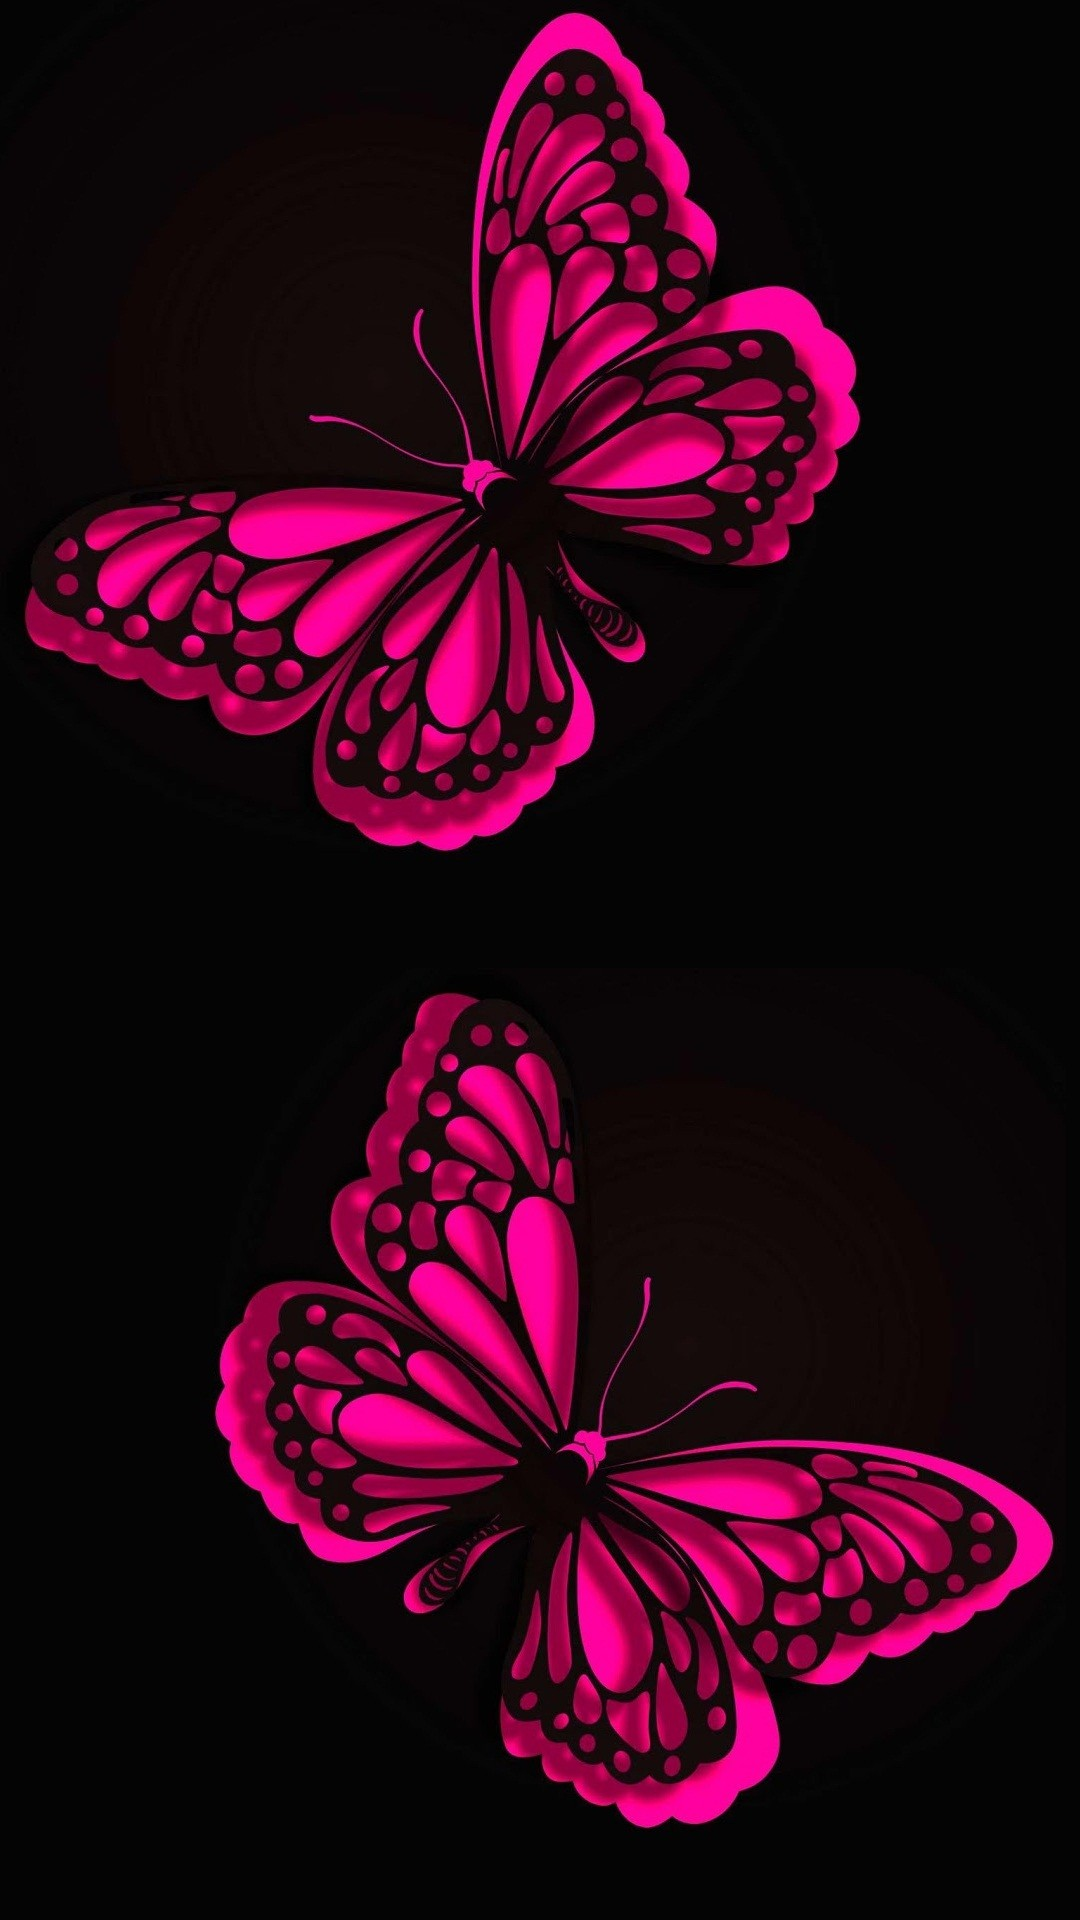 Download Wallpaper With Butterfly Hd Backgrounds Download